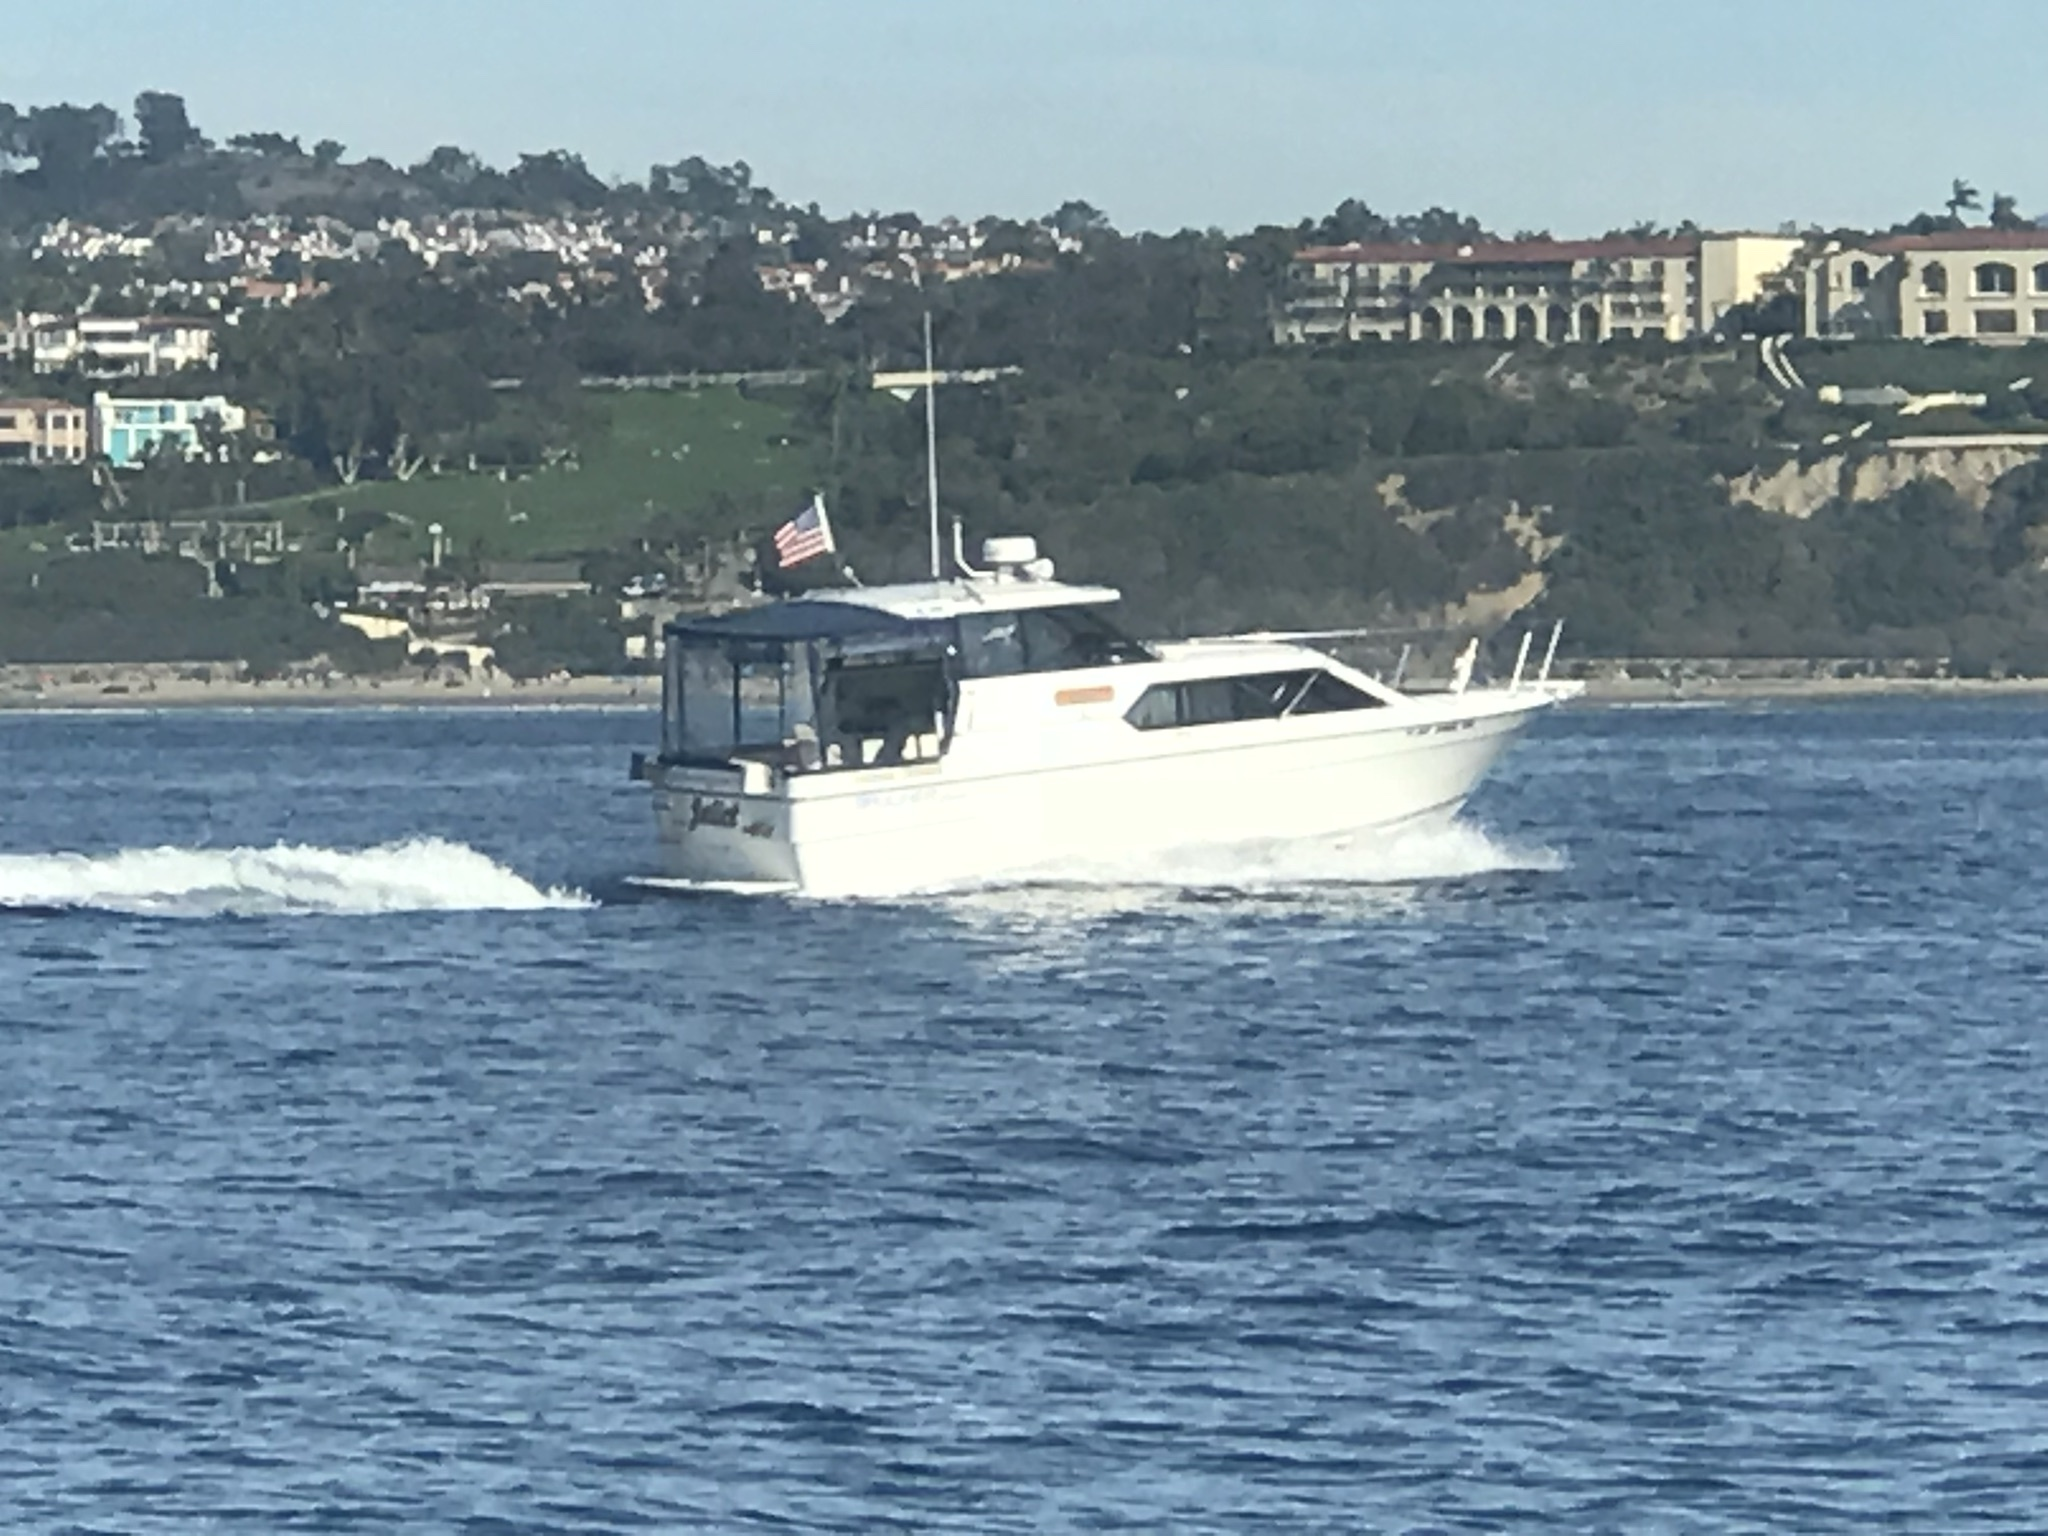 Juliet, our 2859, in action off the Southern California Coast!